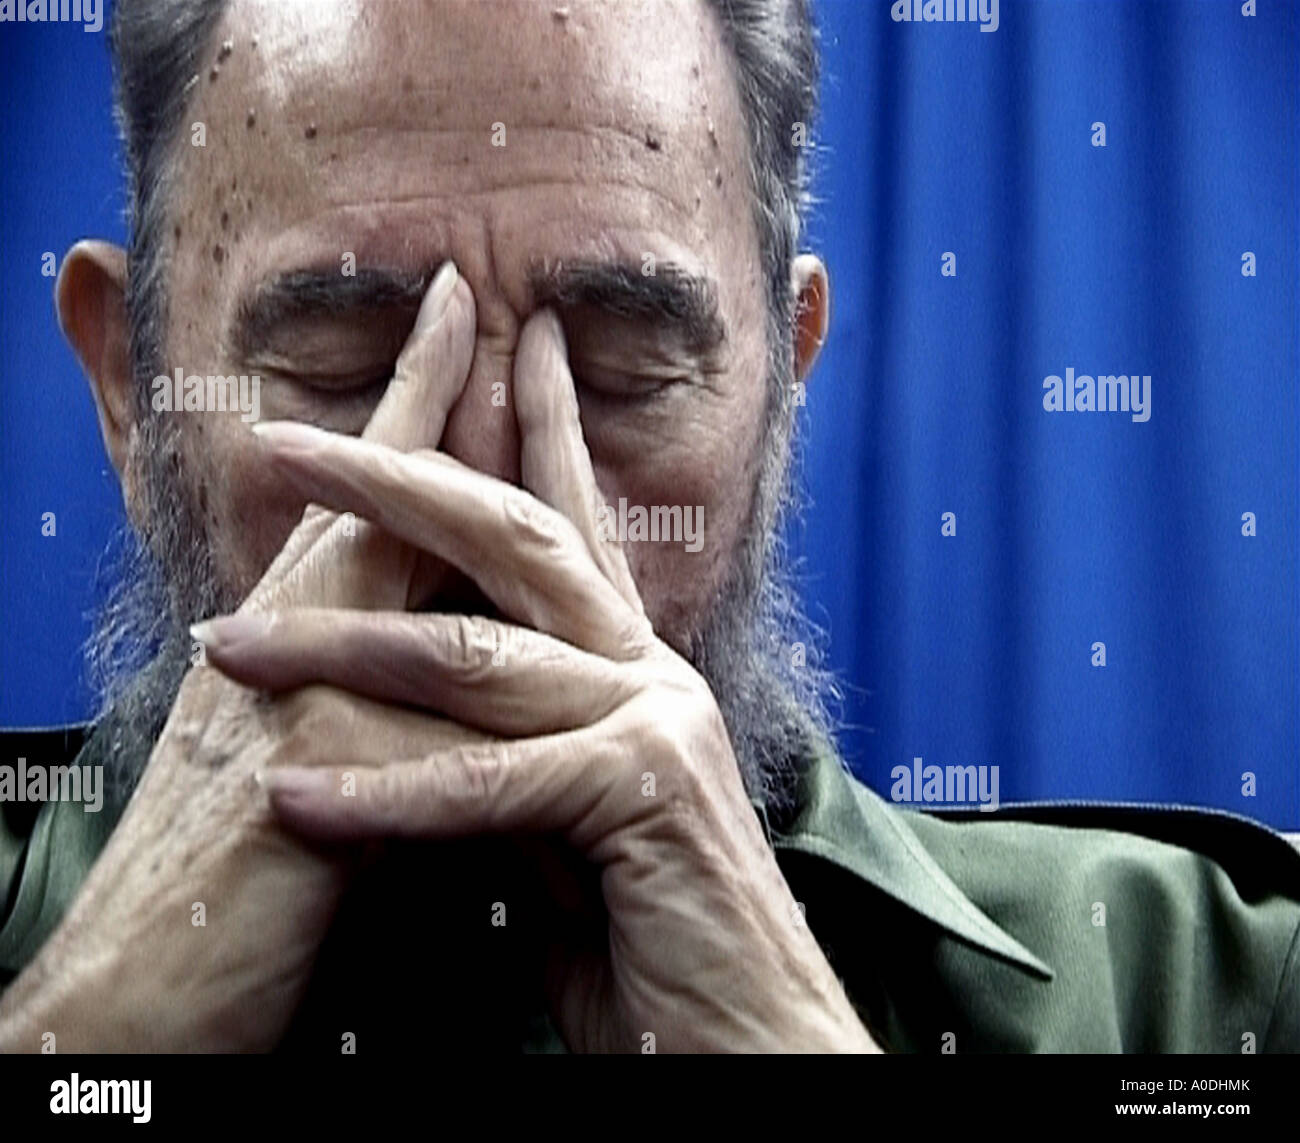 COMANDANTE 2003 HBO film by Oliver Stone - Stock Image